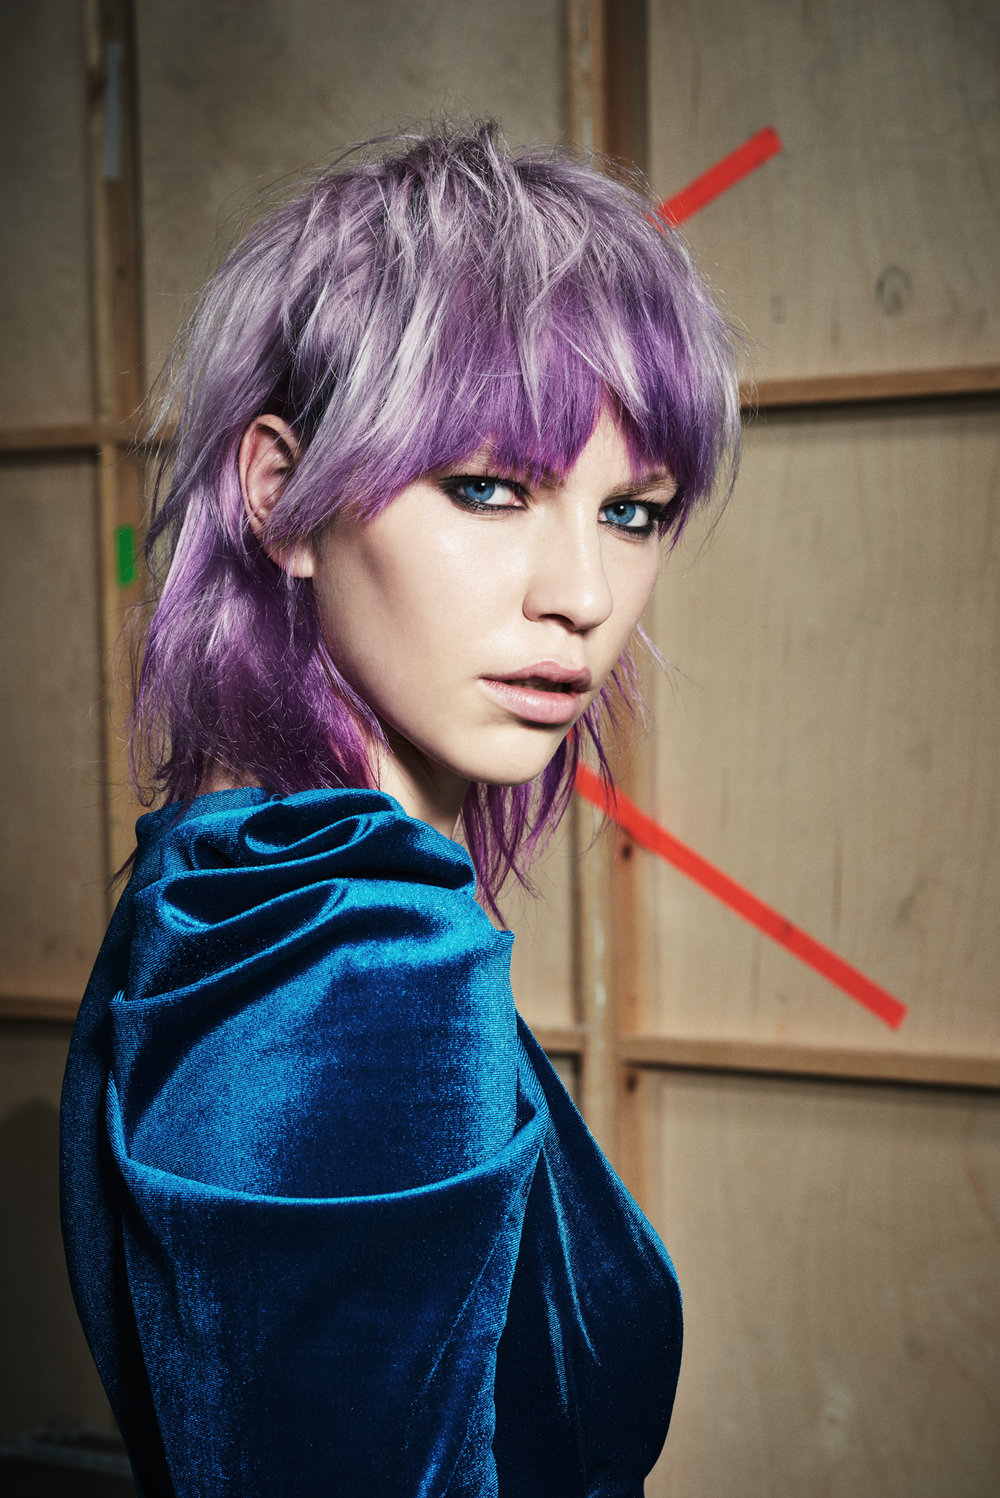 FINAL_2017_12_10_TIGI_BED_HEAD_SCULPT_VIOLET_1_2040_M_V1.JPG